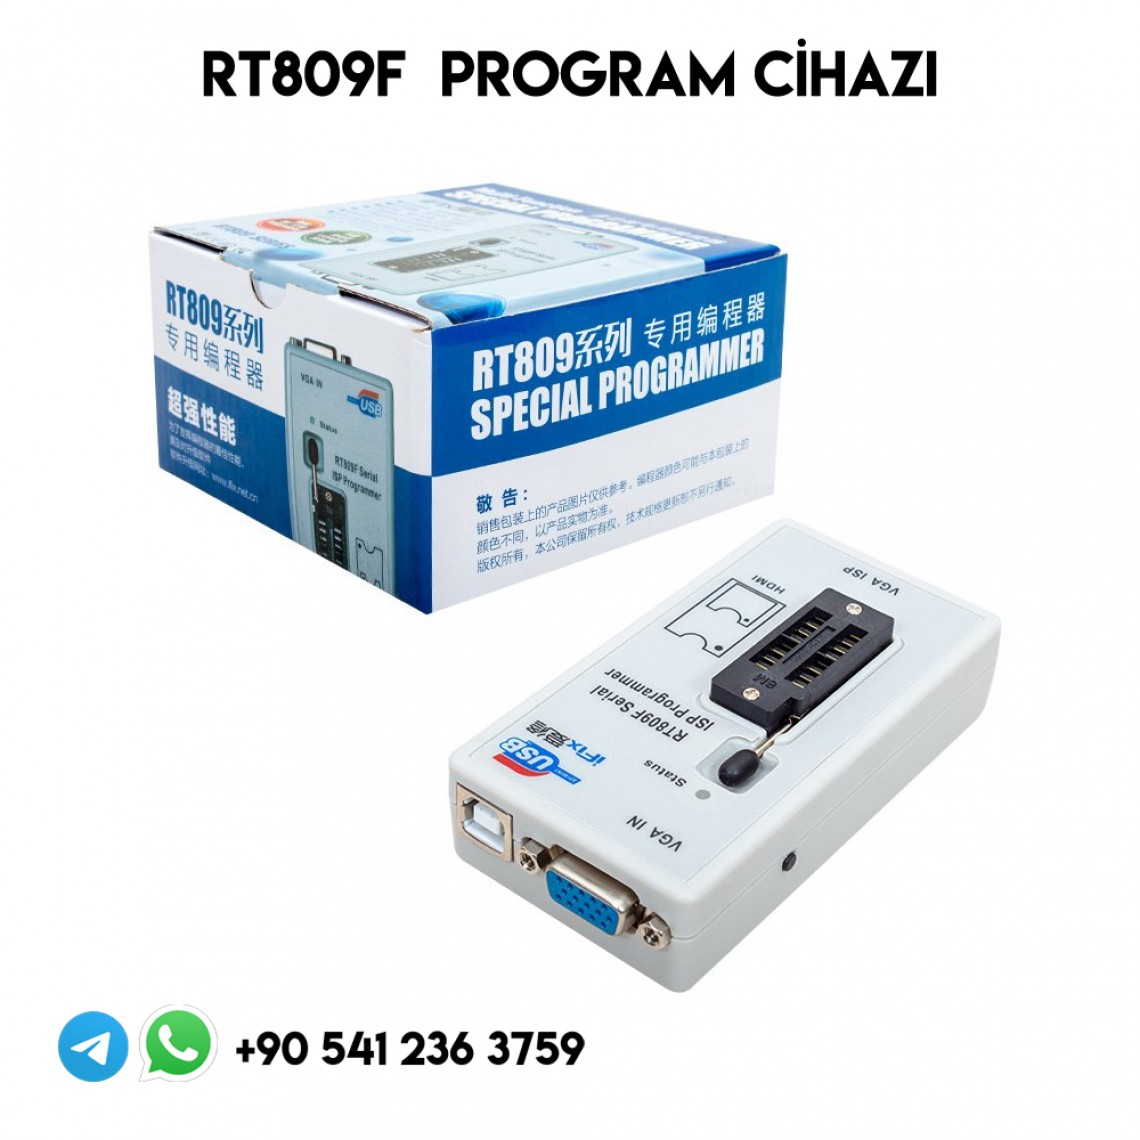 RT809F, Serial ISP PROGRAMMER, SPİ, EPROM, MCU, BİOS, PROGRAM CİHAZI